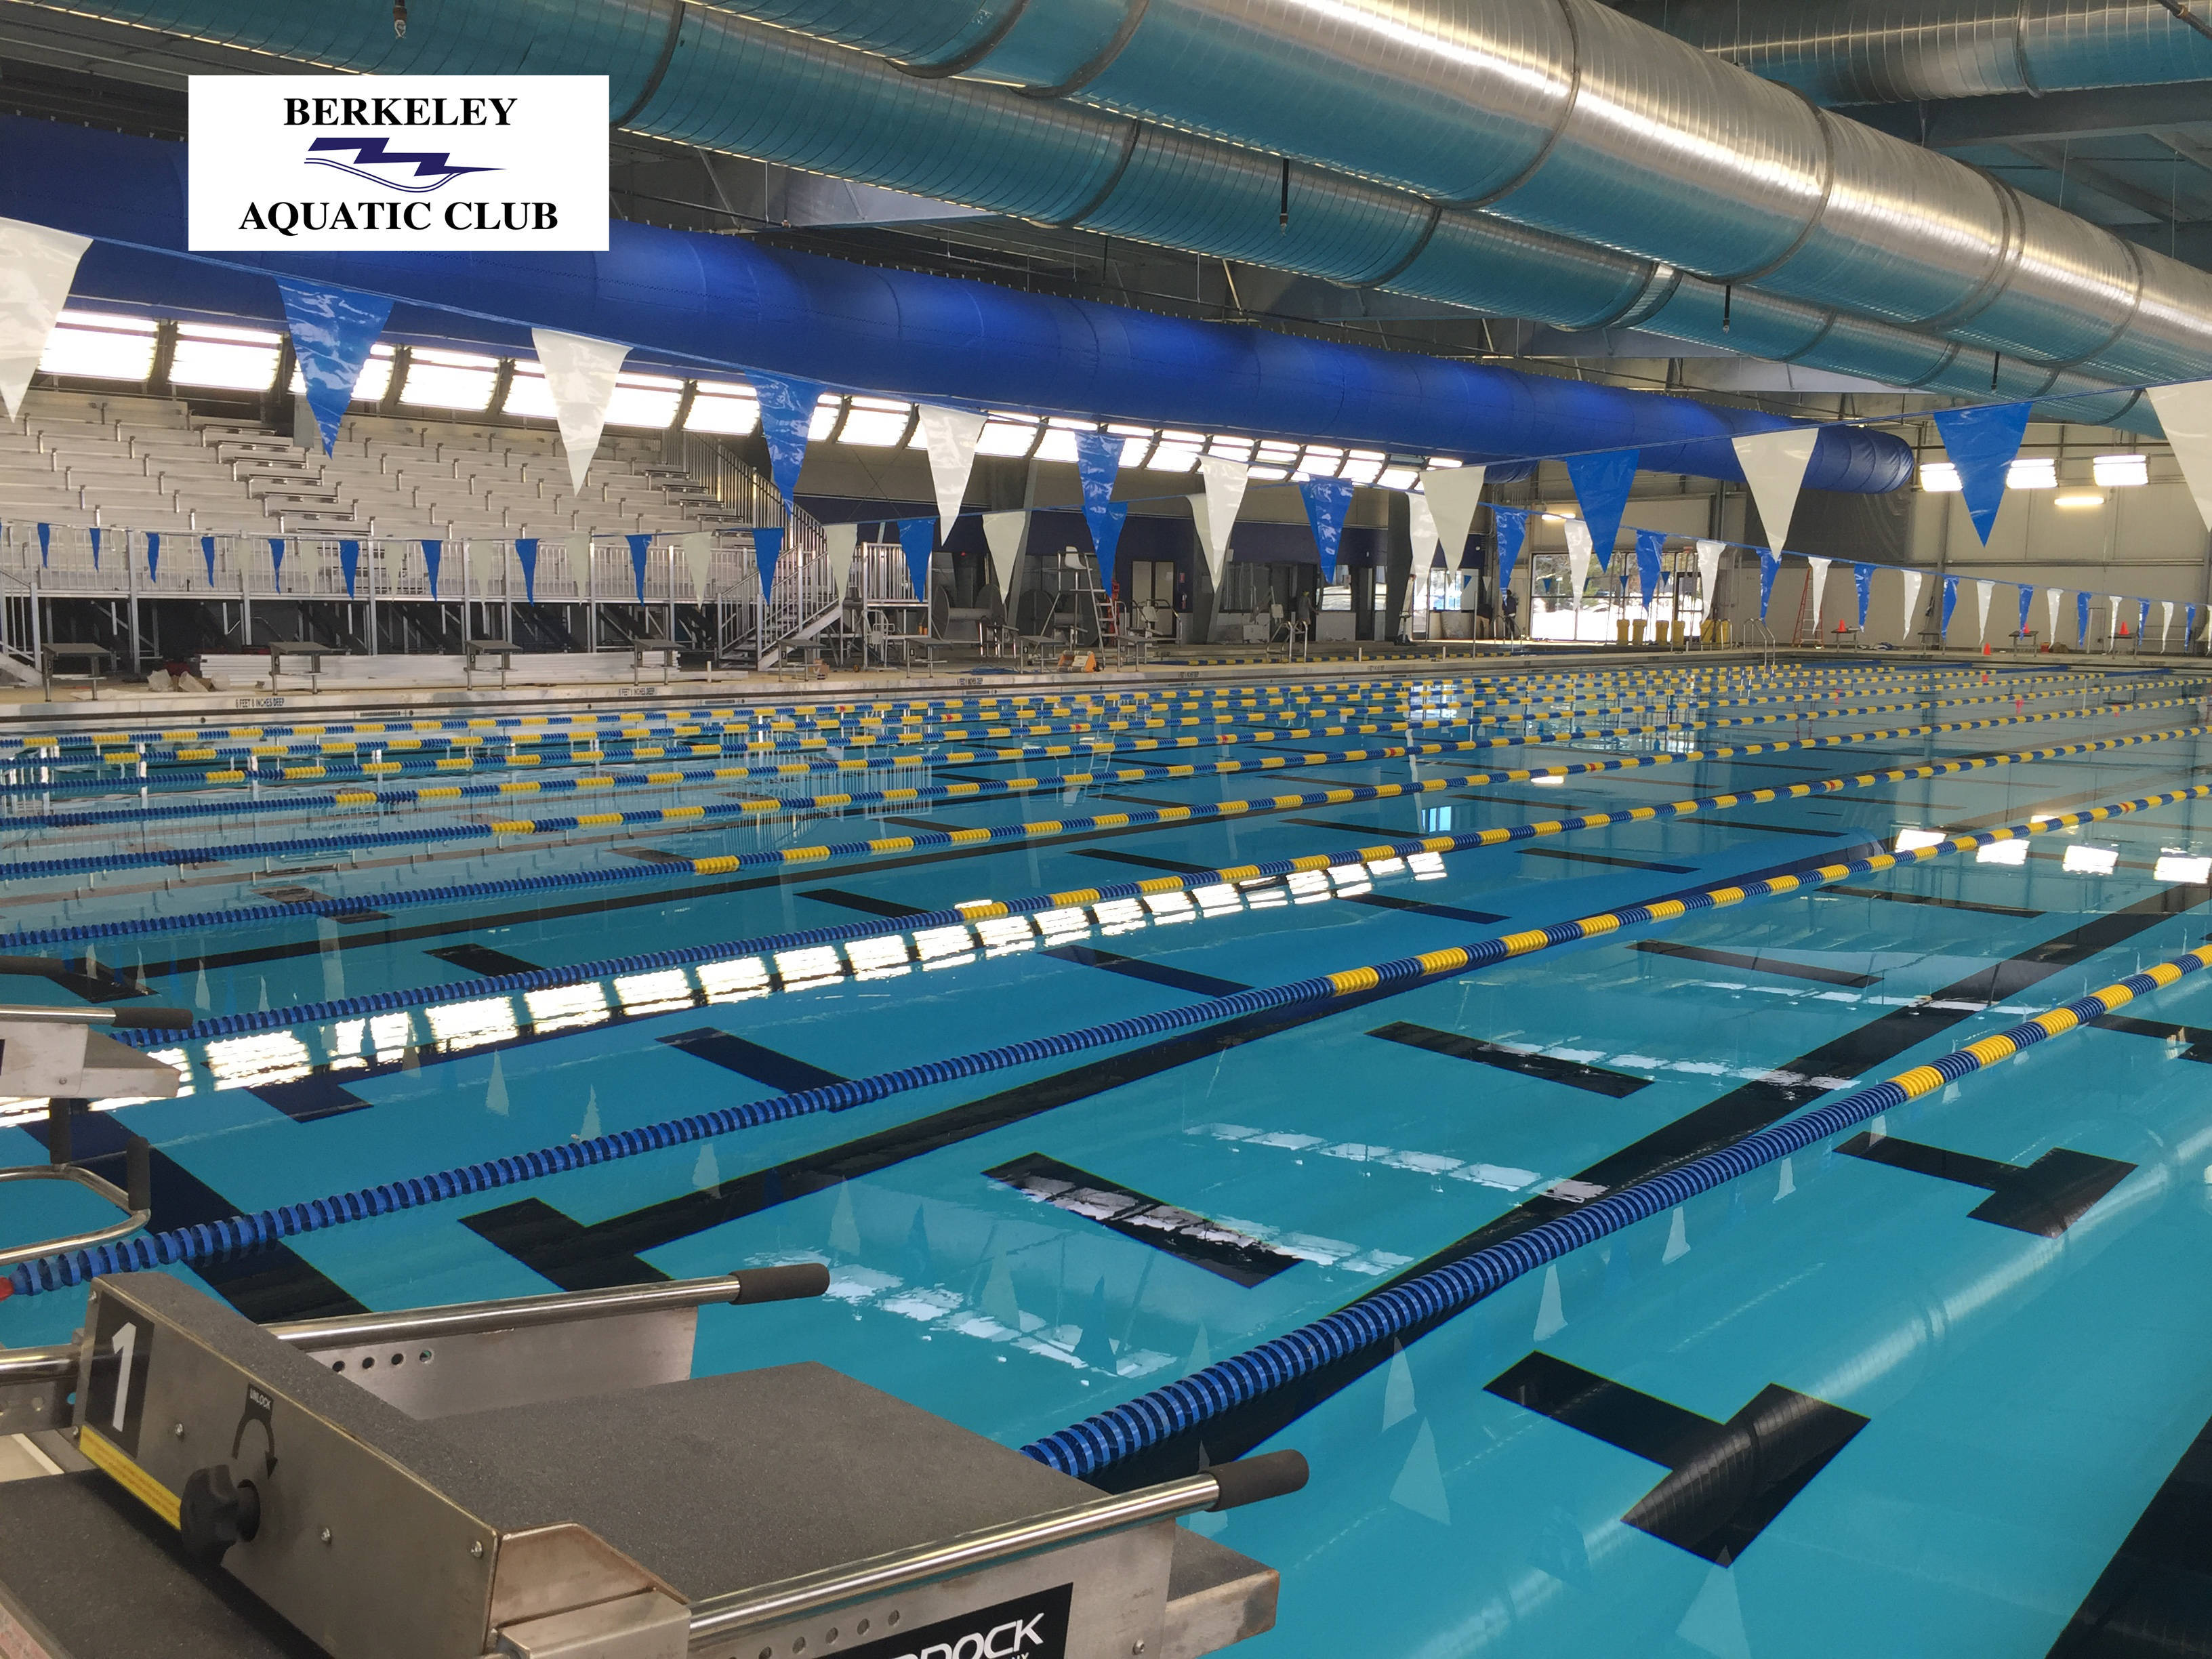 Berkeley aquatic club announces upcoming swim team tryouts for 2017 18 season new providence for Brooklyn college swimming pool membership